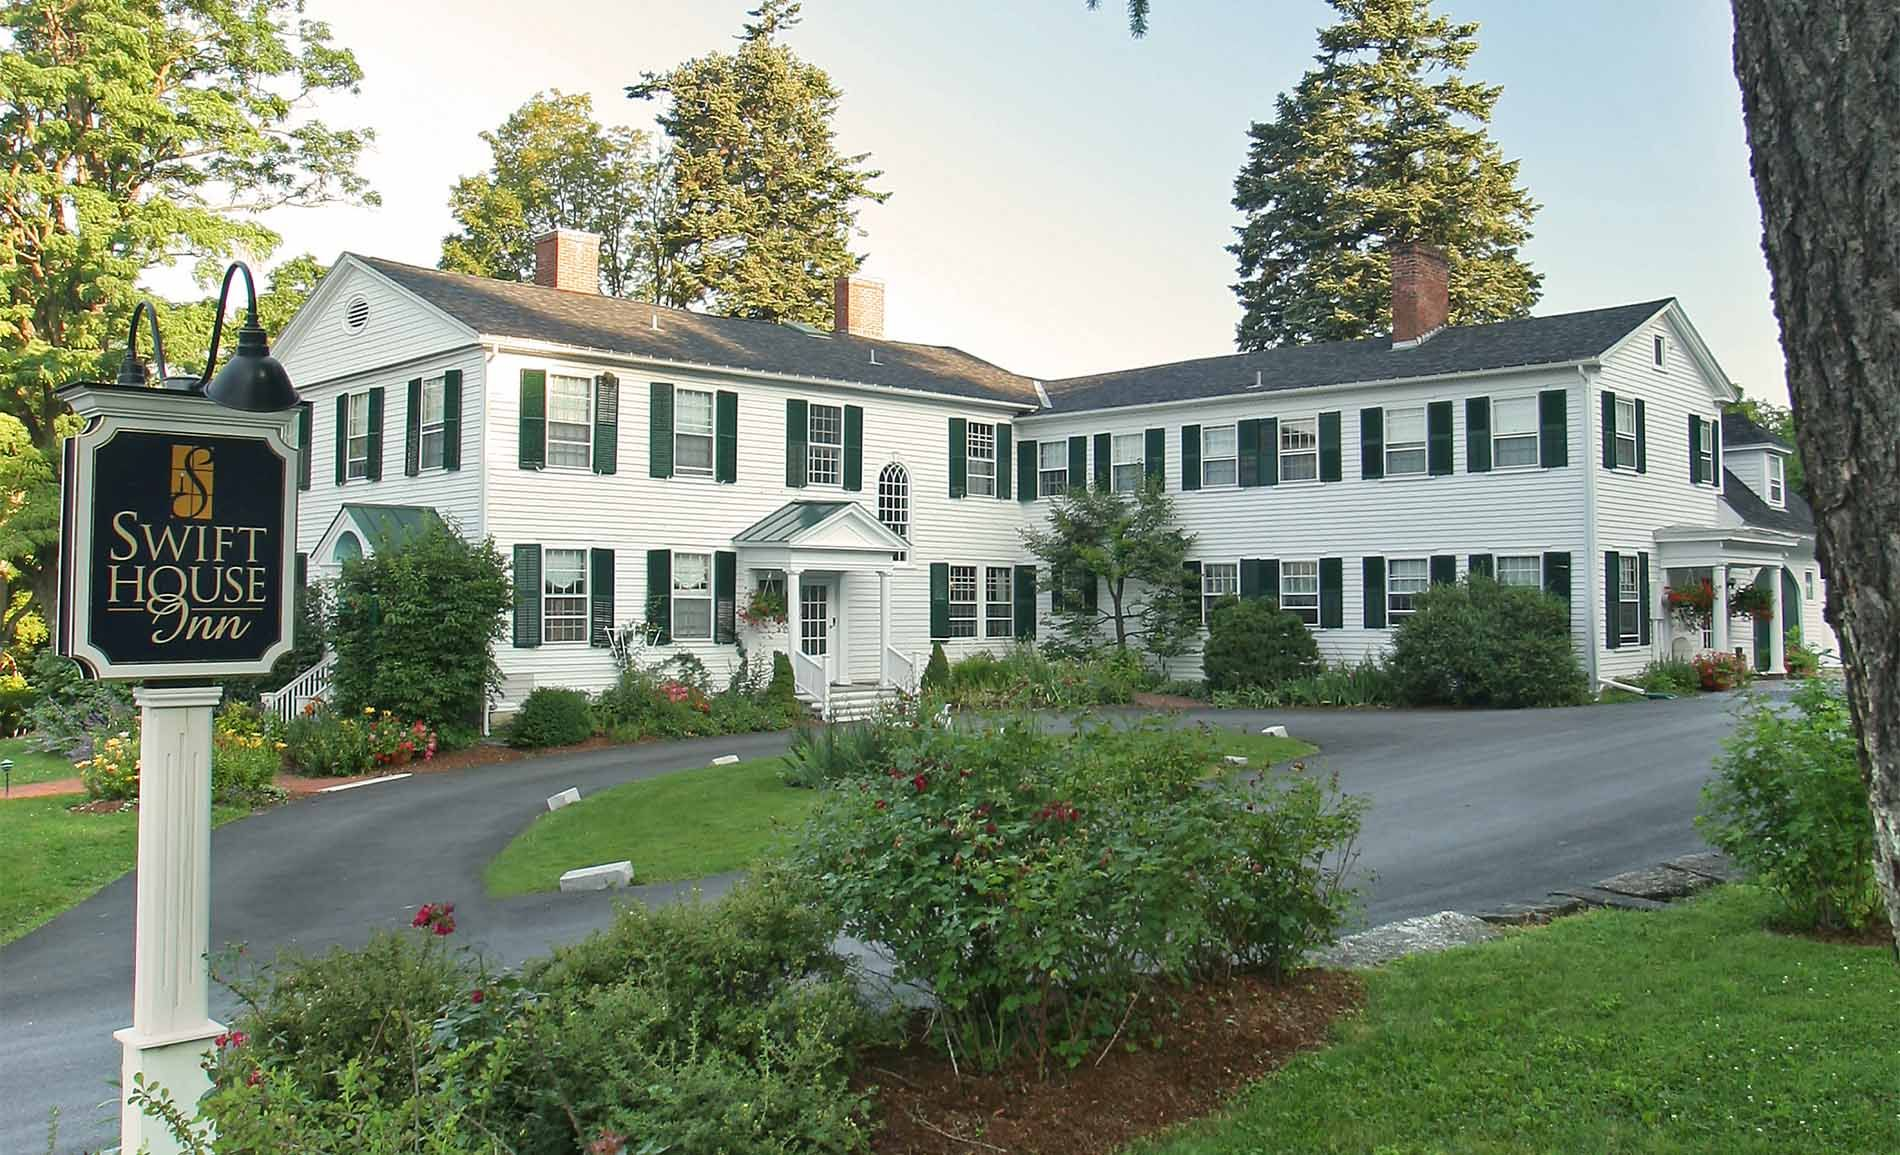 Swift House Inn, Middlebury. Lodging and dining. Maine